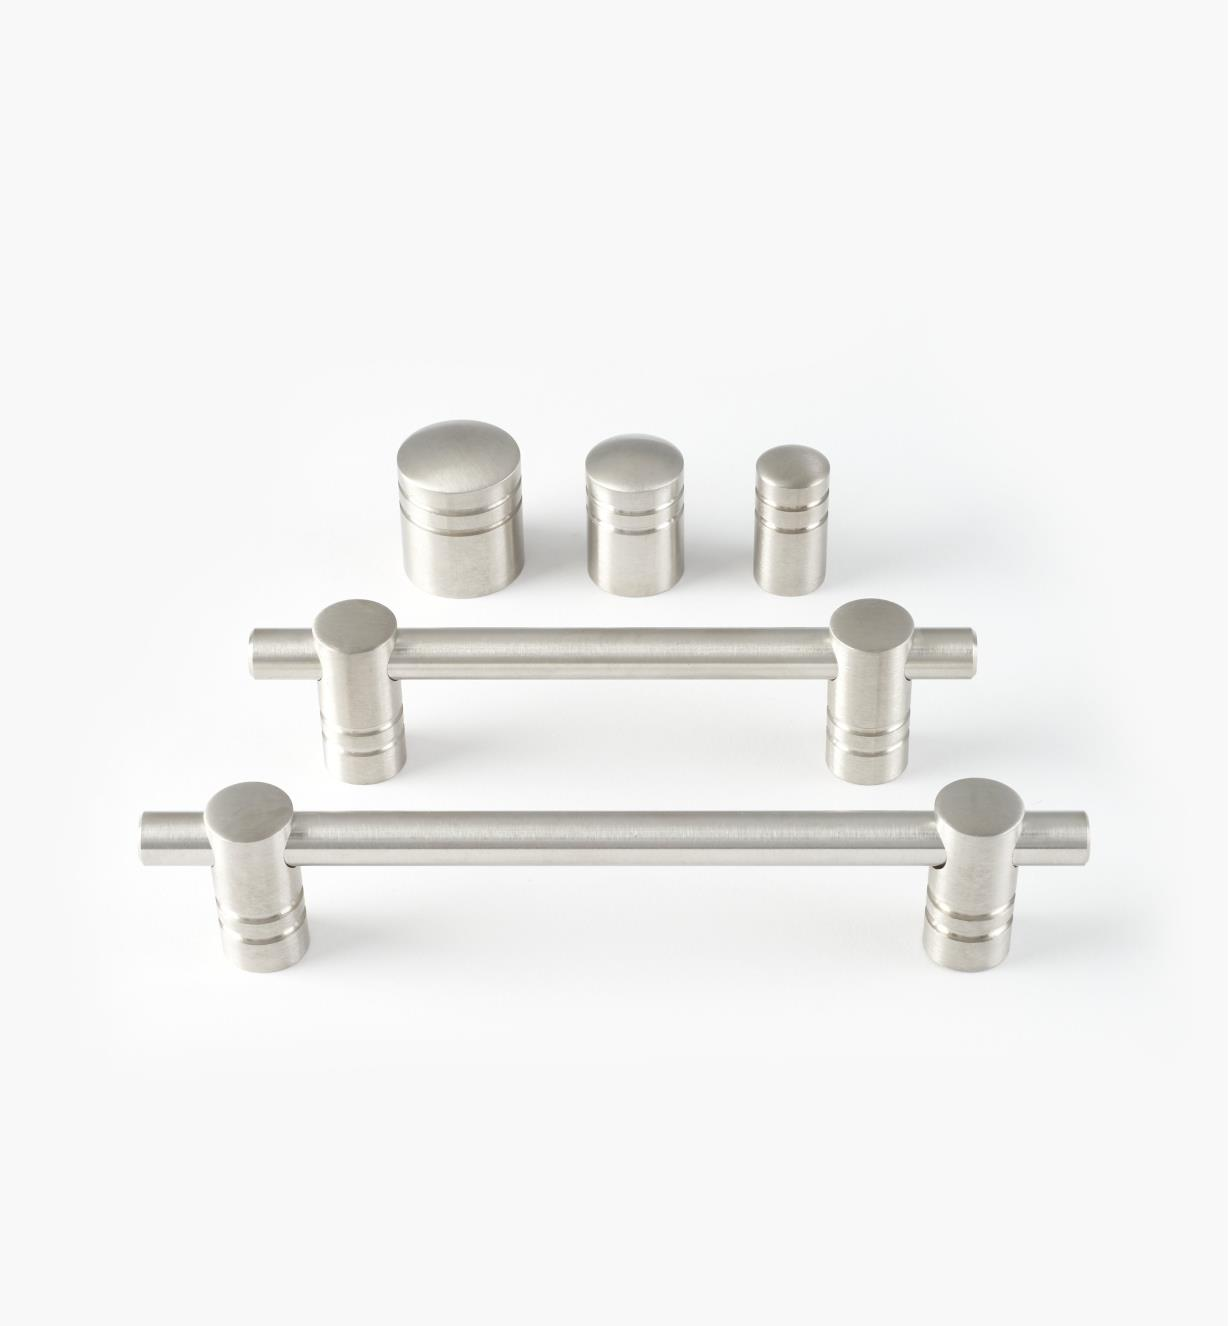 Stainless-Steel Ribbed Hardware